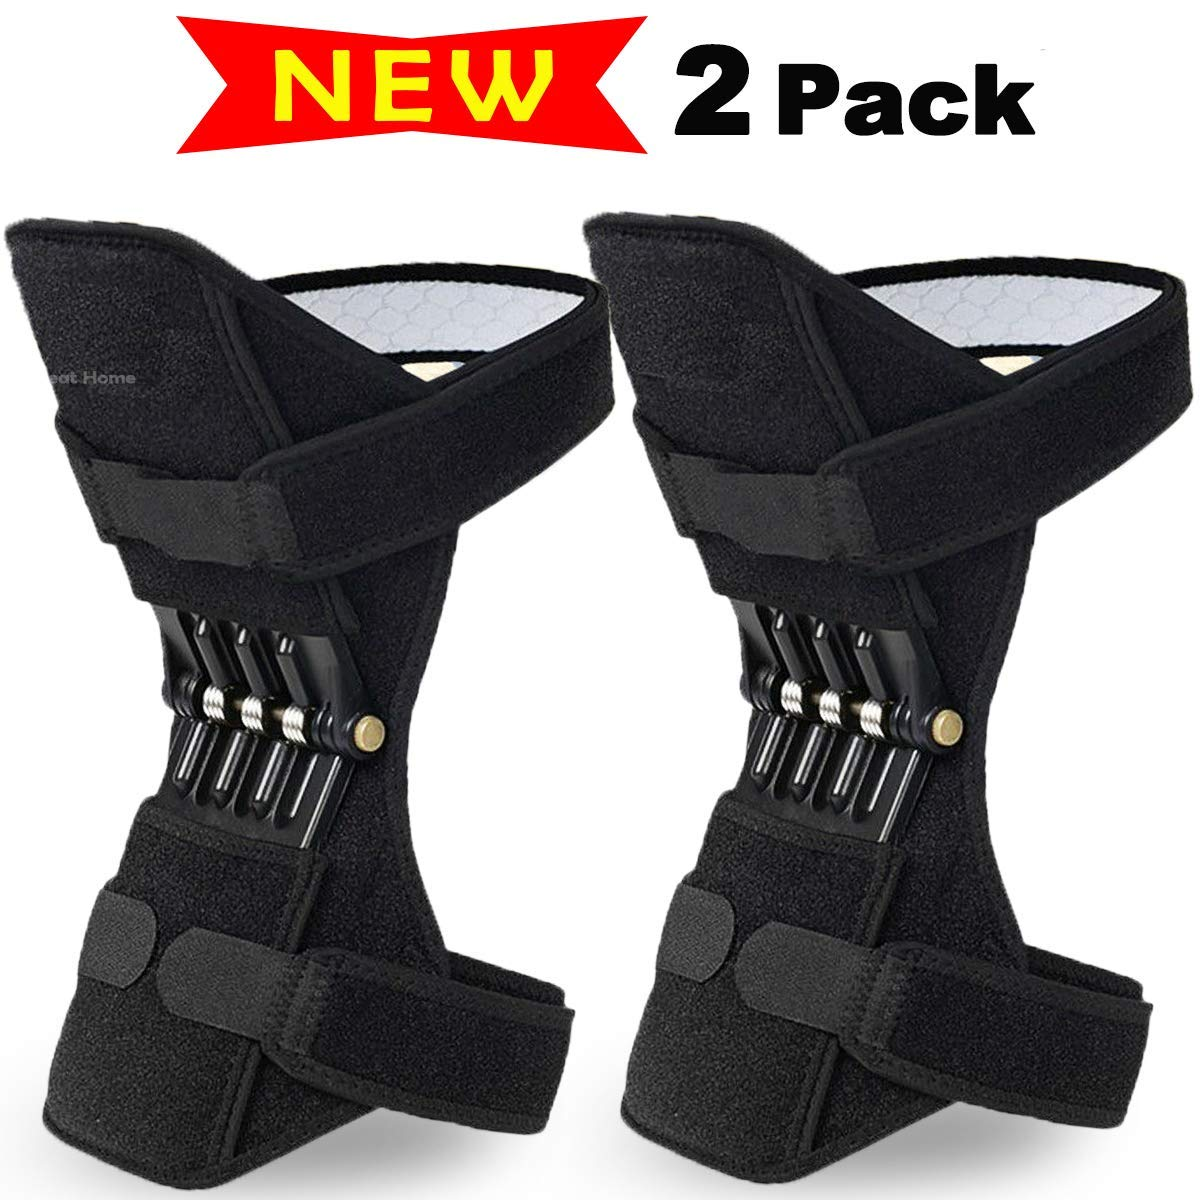 Power Lift Leg Knee Joint Support Pads Brace Powerful Rebound Spring Force Powerlift Knee Protection Booster for Running, Basketball, Weightlifting, Gym, Sports by Great Home